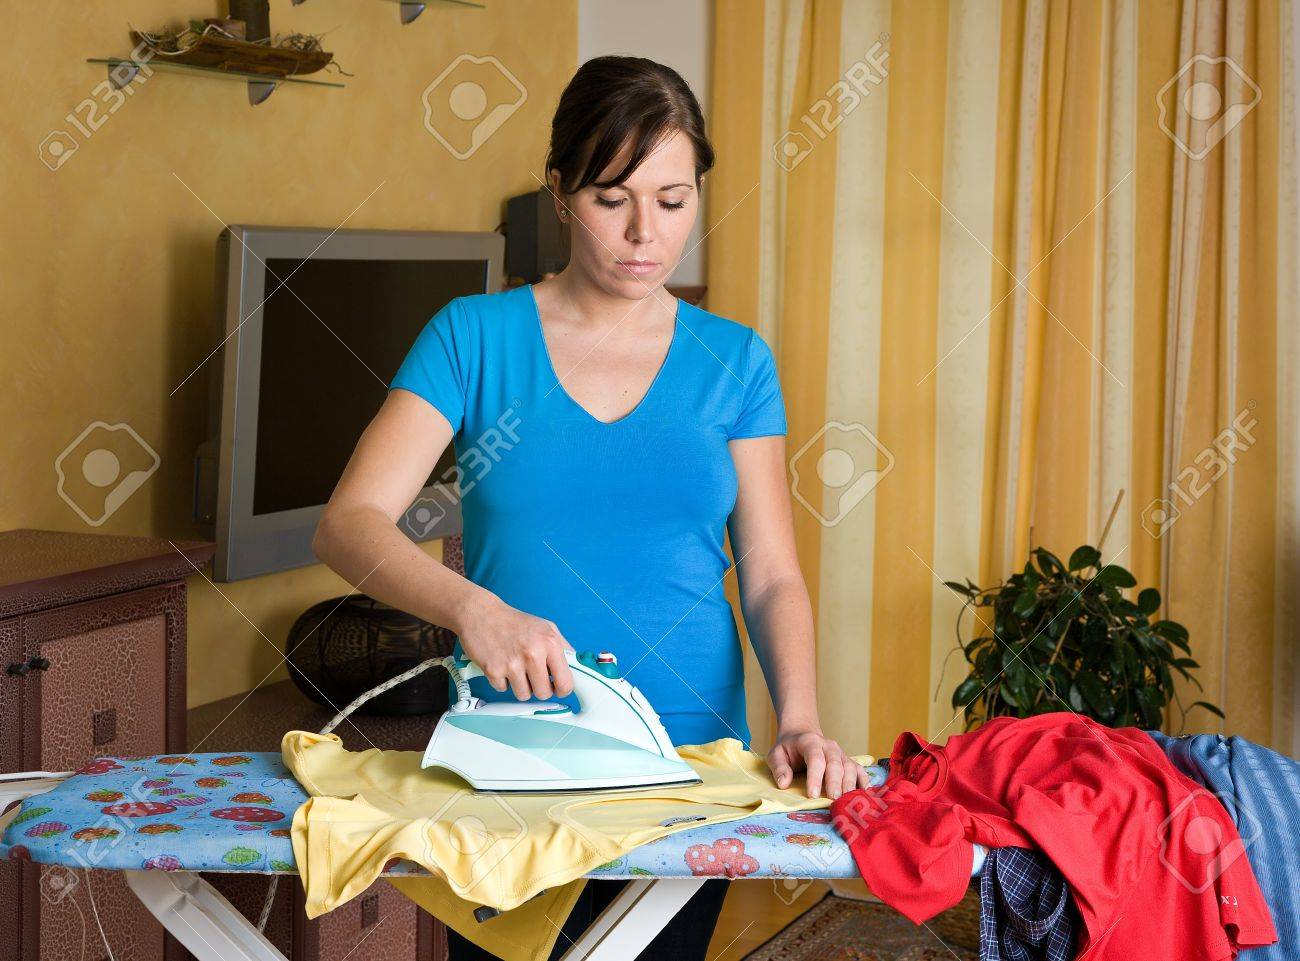 Young Housewife Gets Bored With The Housework. Iron And Ironing ...